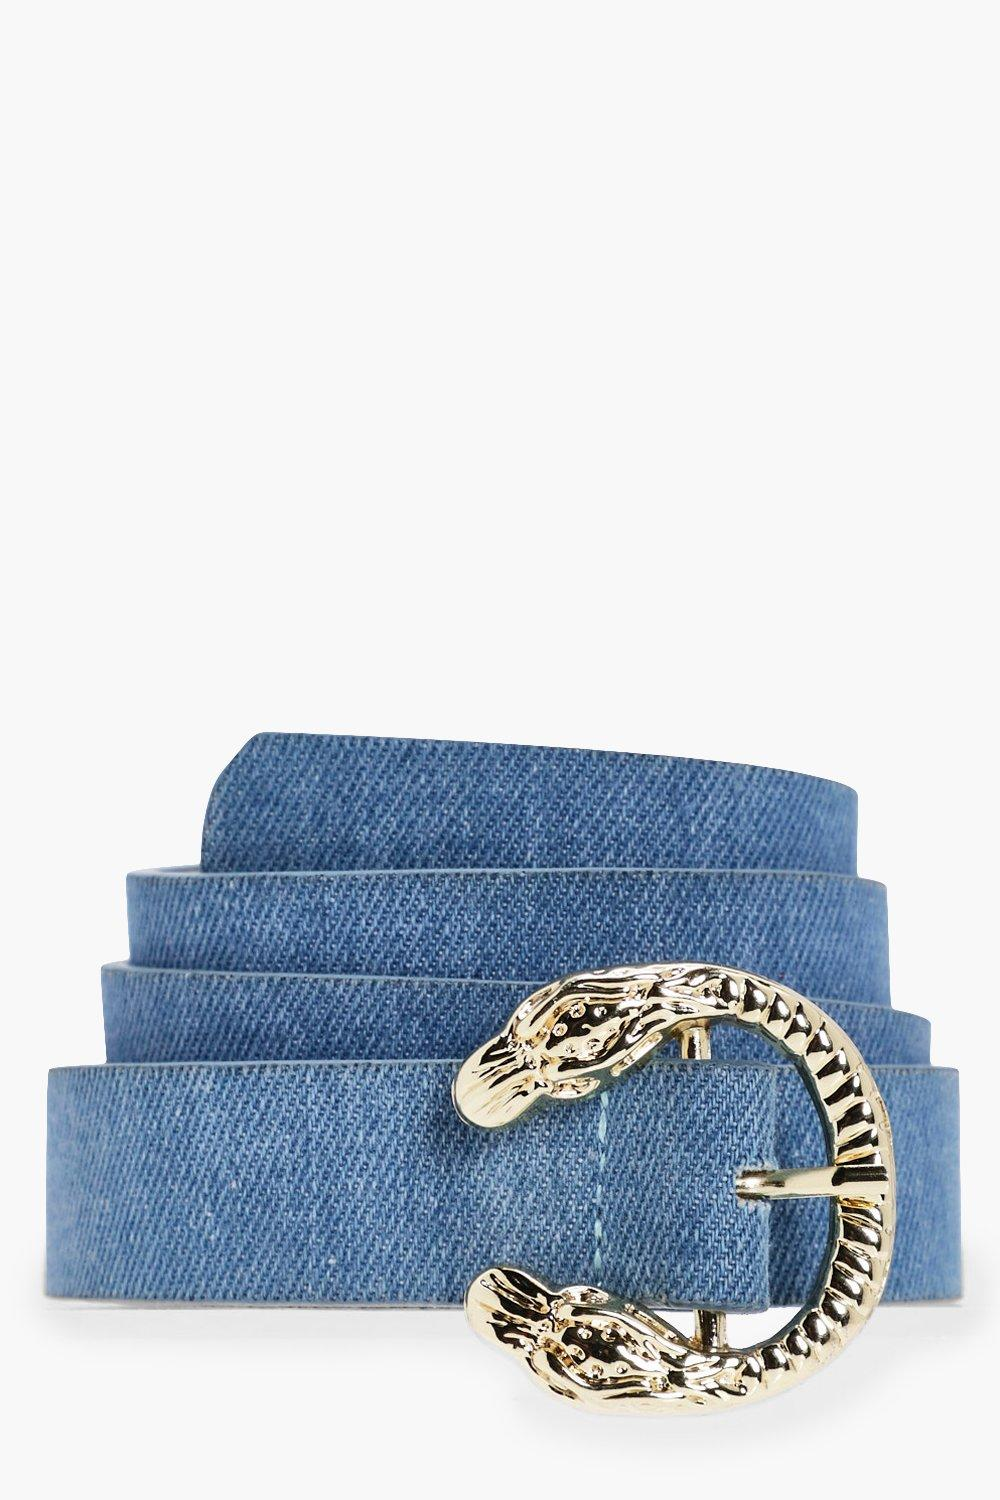 Mini Snake Buckle Detail Denim Belt - blue - Holly